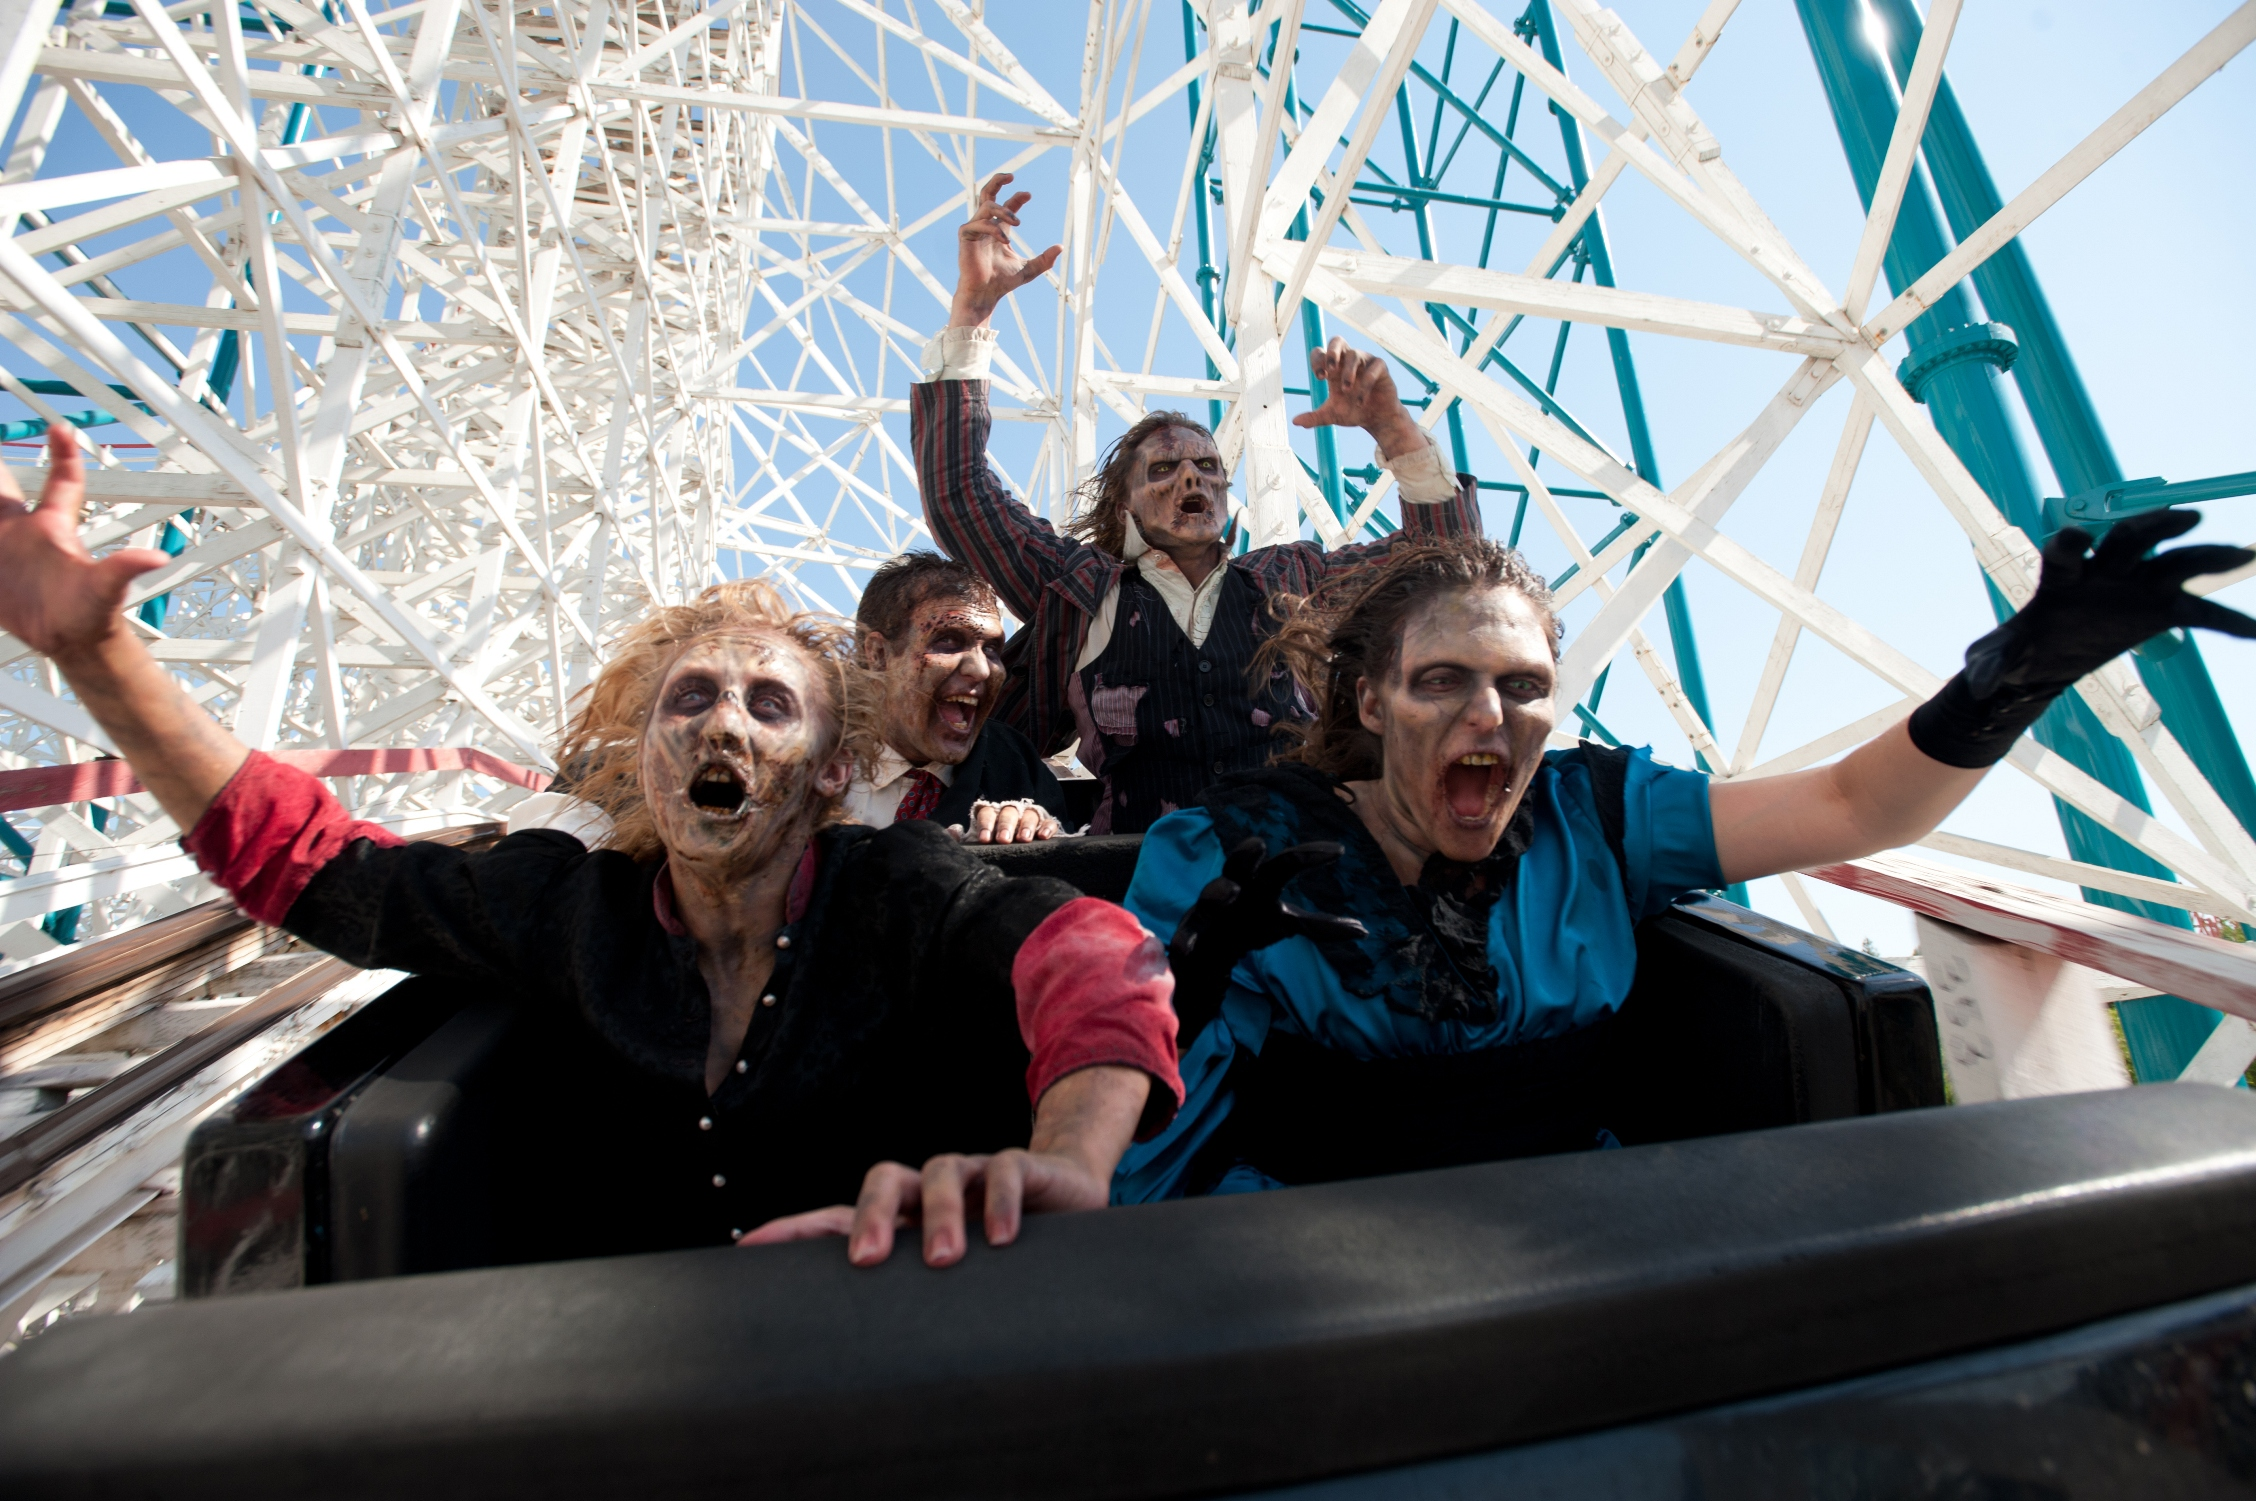 Six Flags Great Adventure Fright Fest Is Back For Its 21st Year